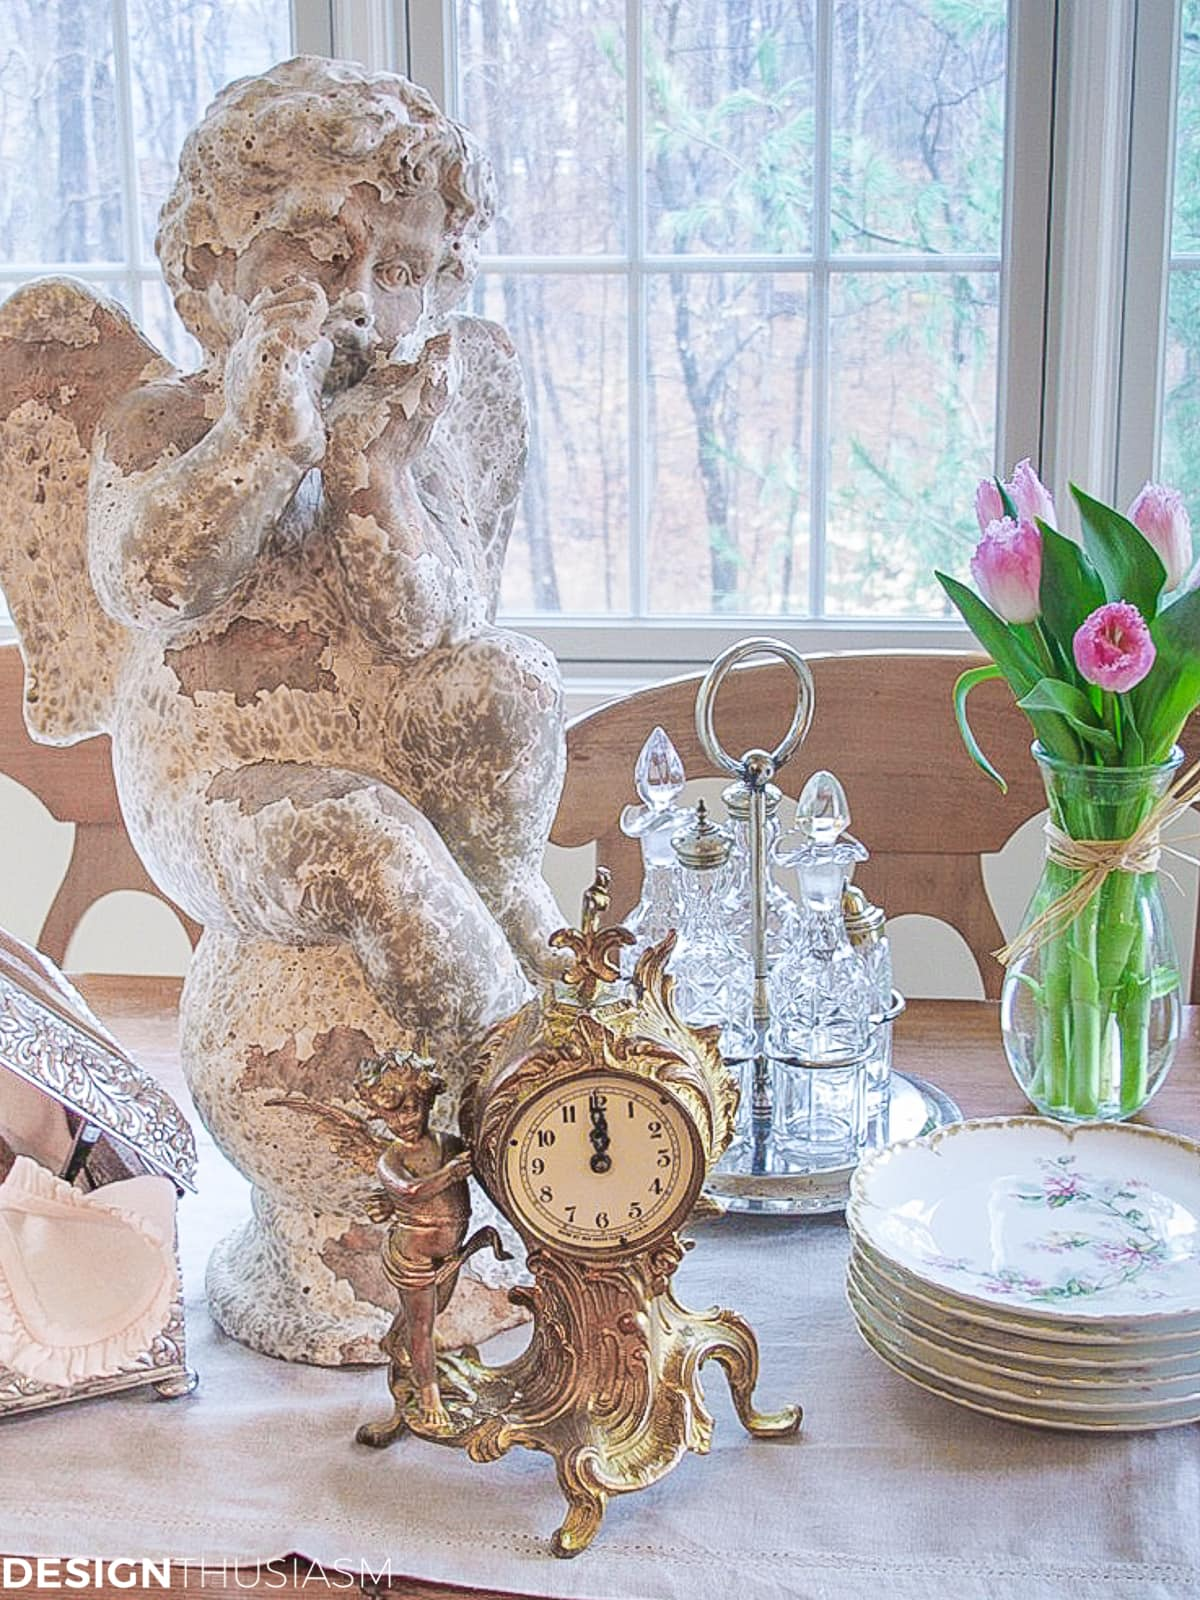 chippy vintage garden statue and flea market finds in the kitchen